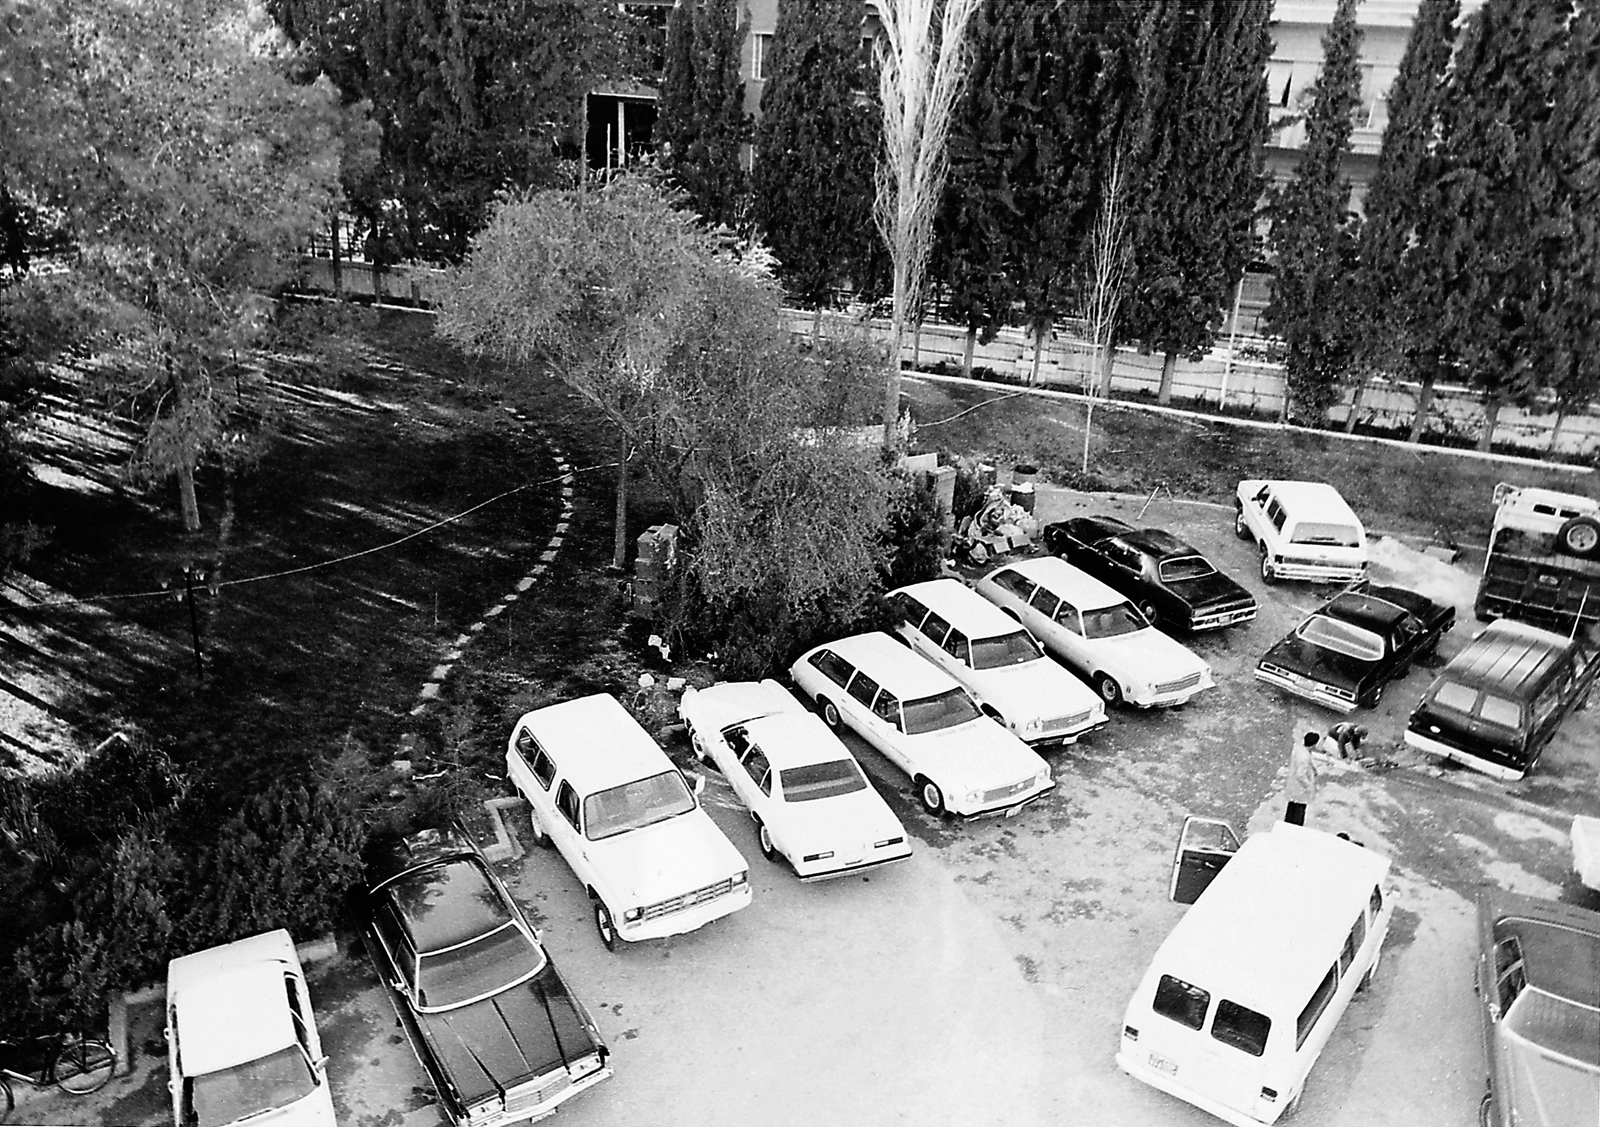 Damascus - Consulate Office Building - 1978